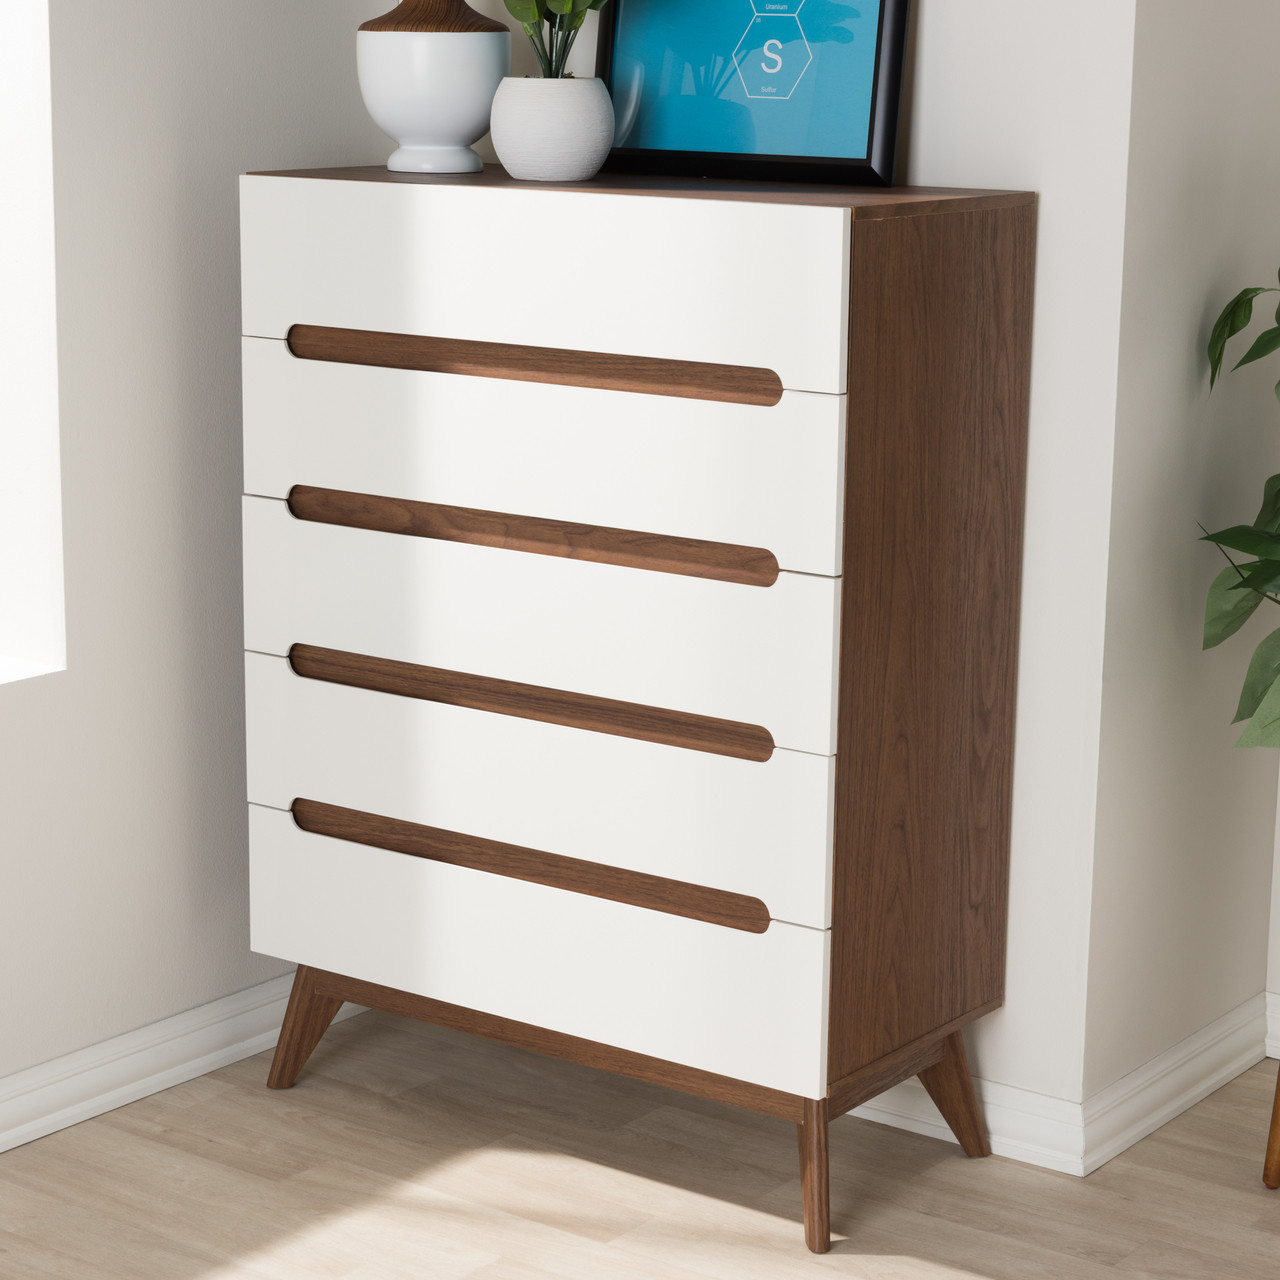 Baxton Studio Calypso Mid Century Modern White And Walnut